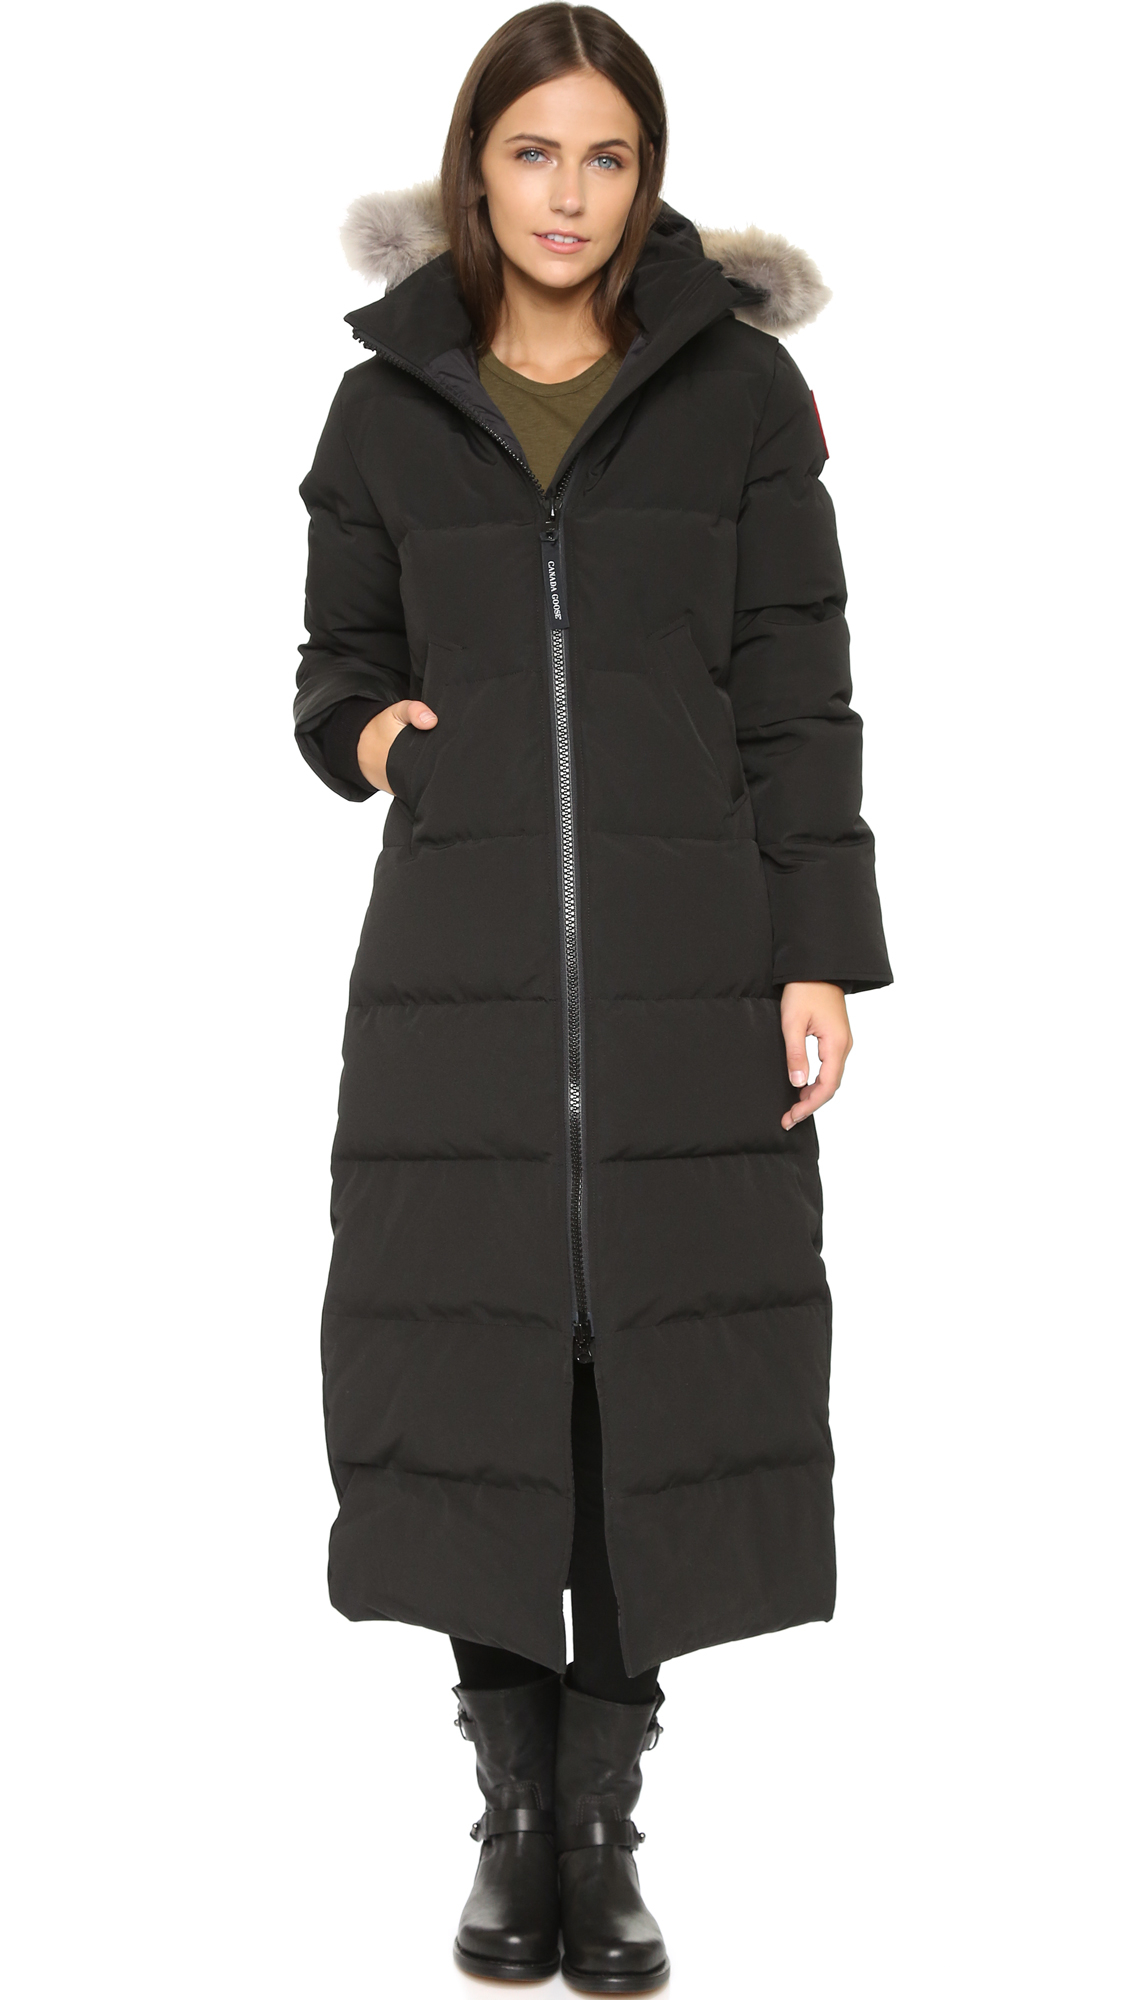 Canada Goose Mystique Parka - Silverbirch In Black - Lyst-8863